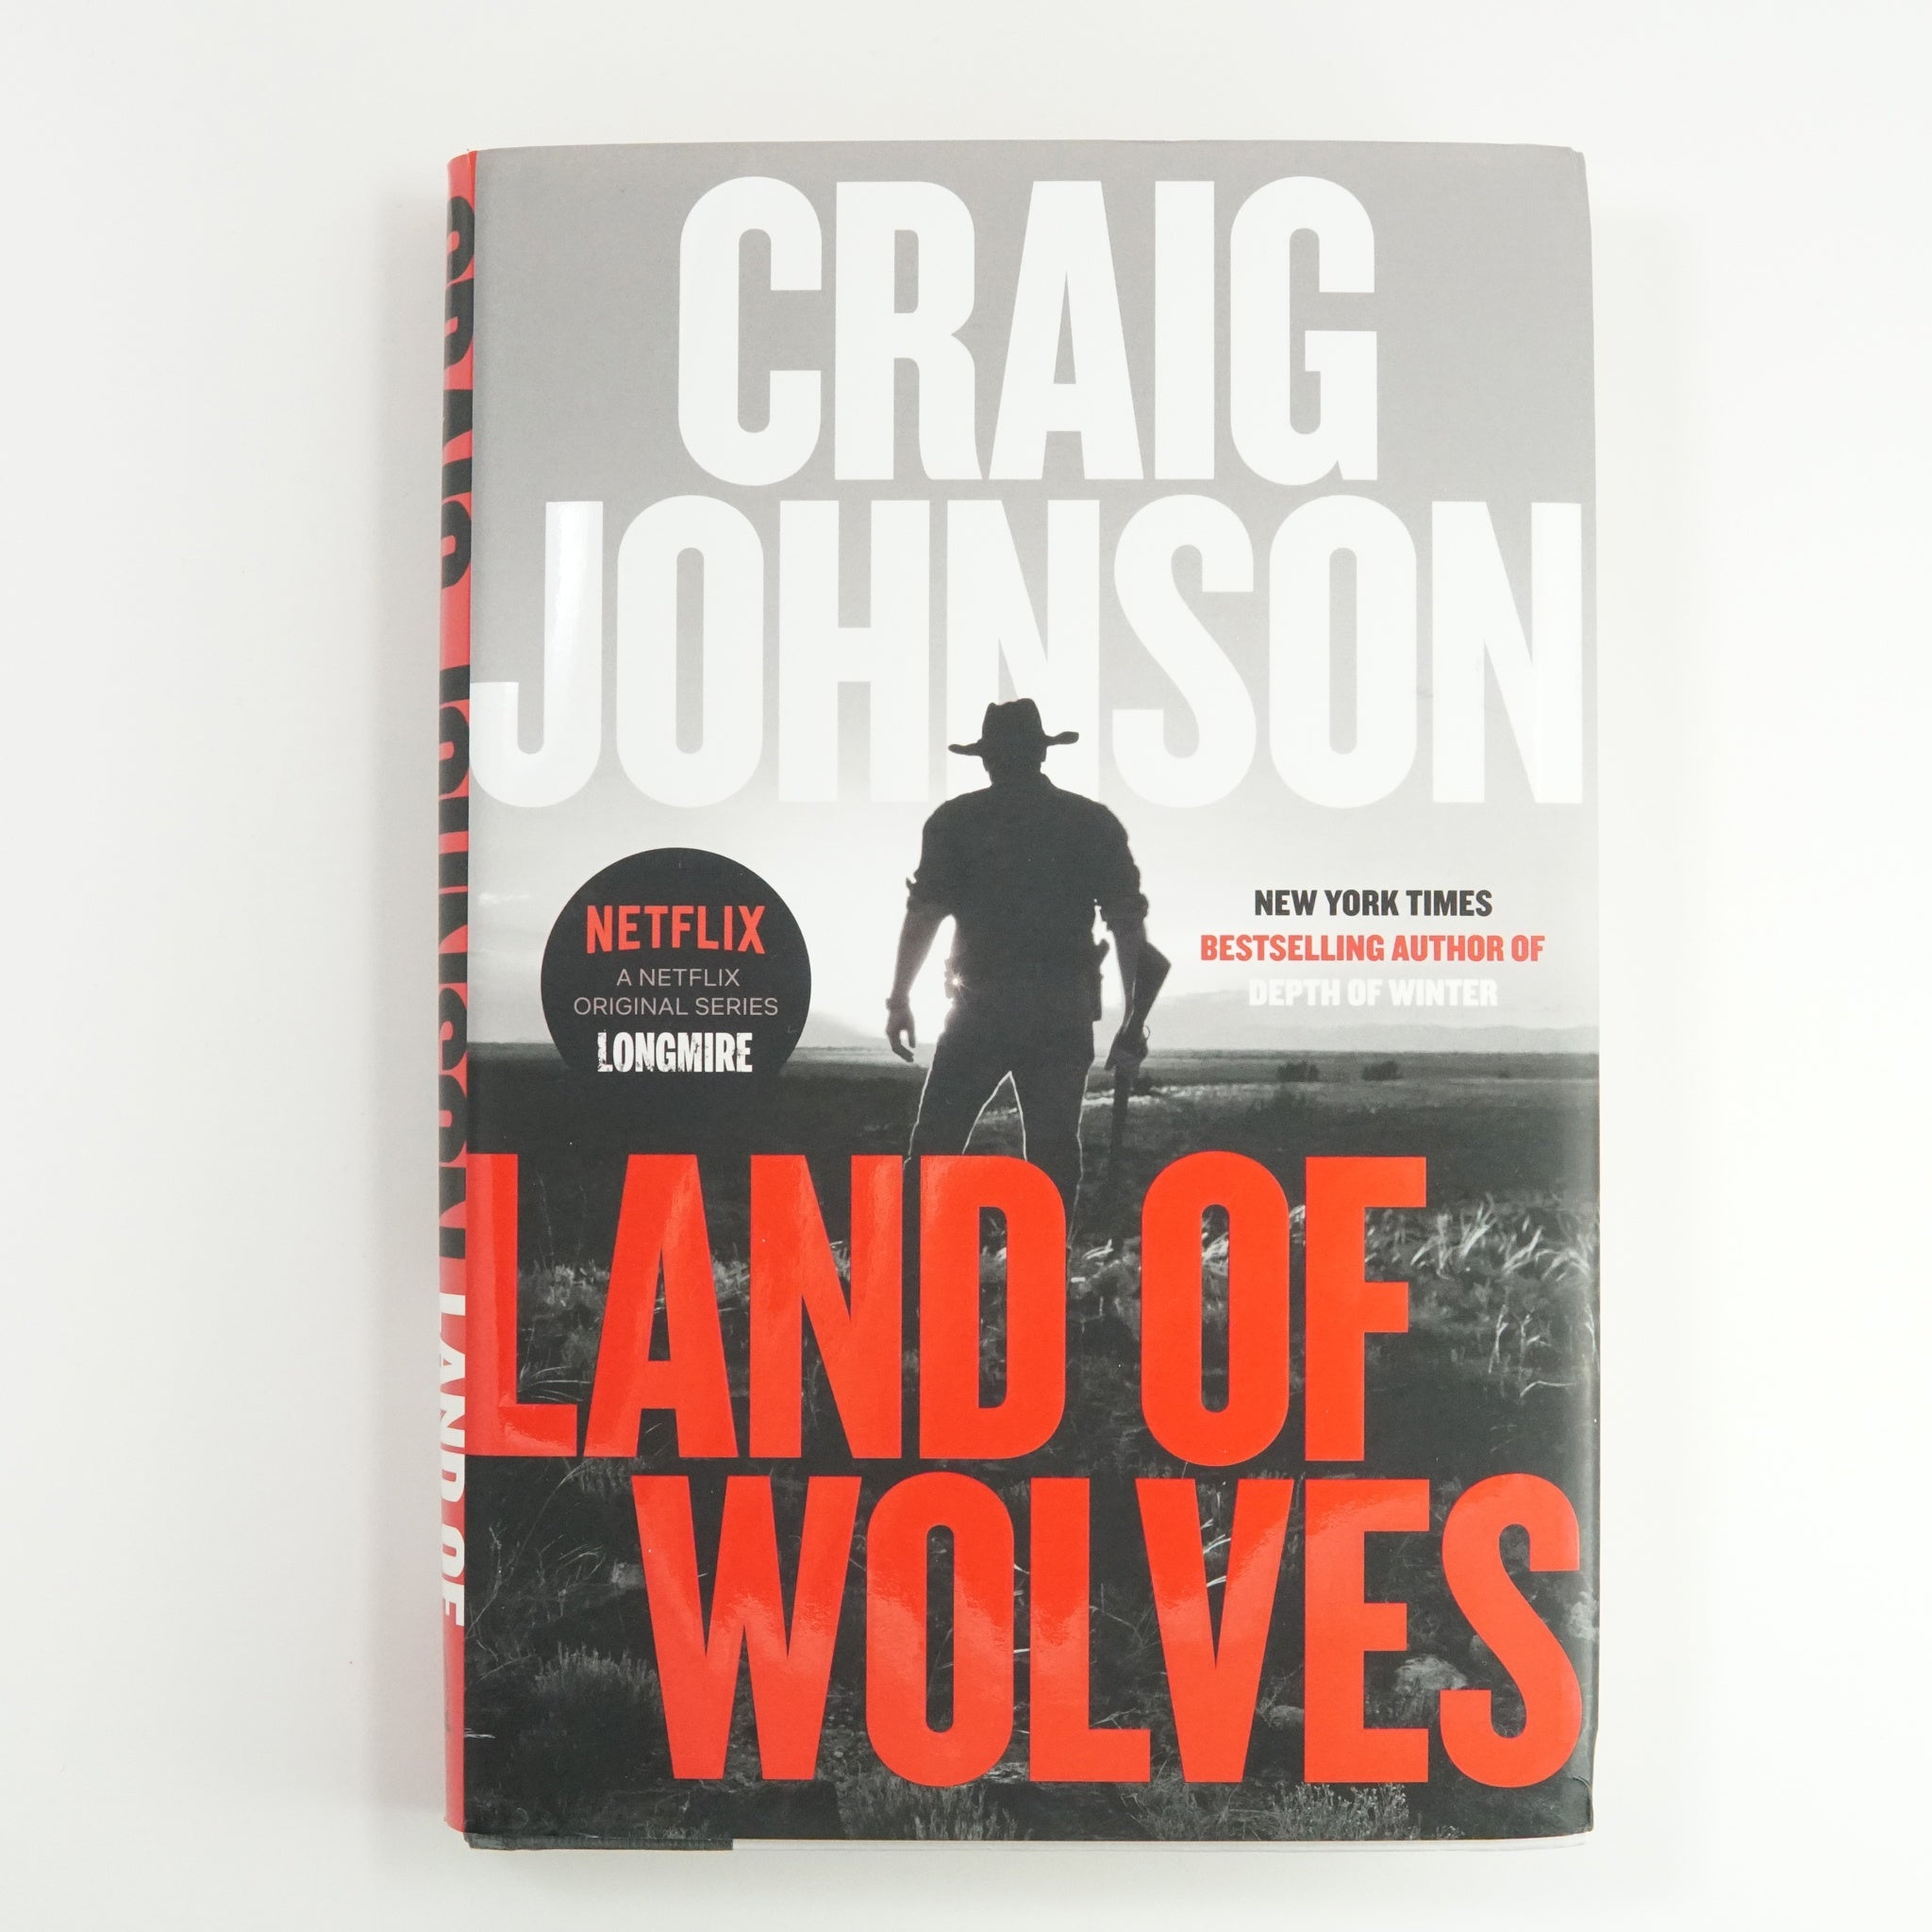 """Land of Wolves"" by Craig Johnson - The Longmire Series"